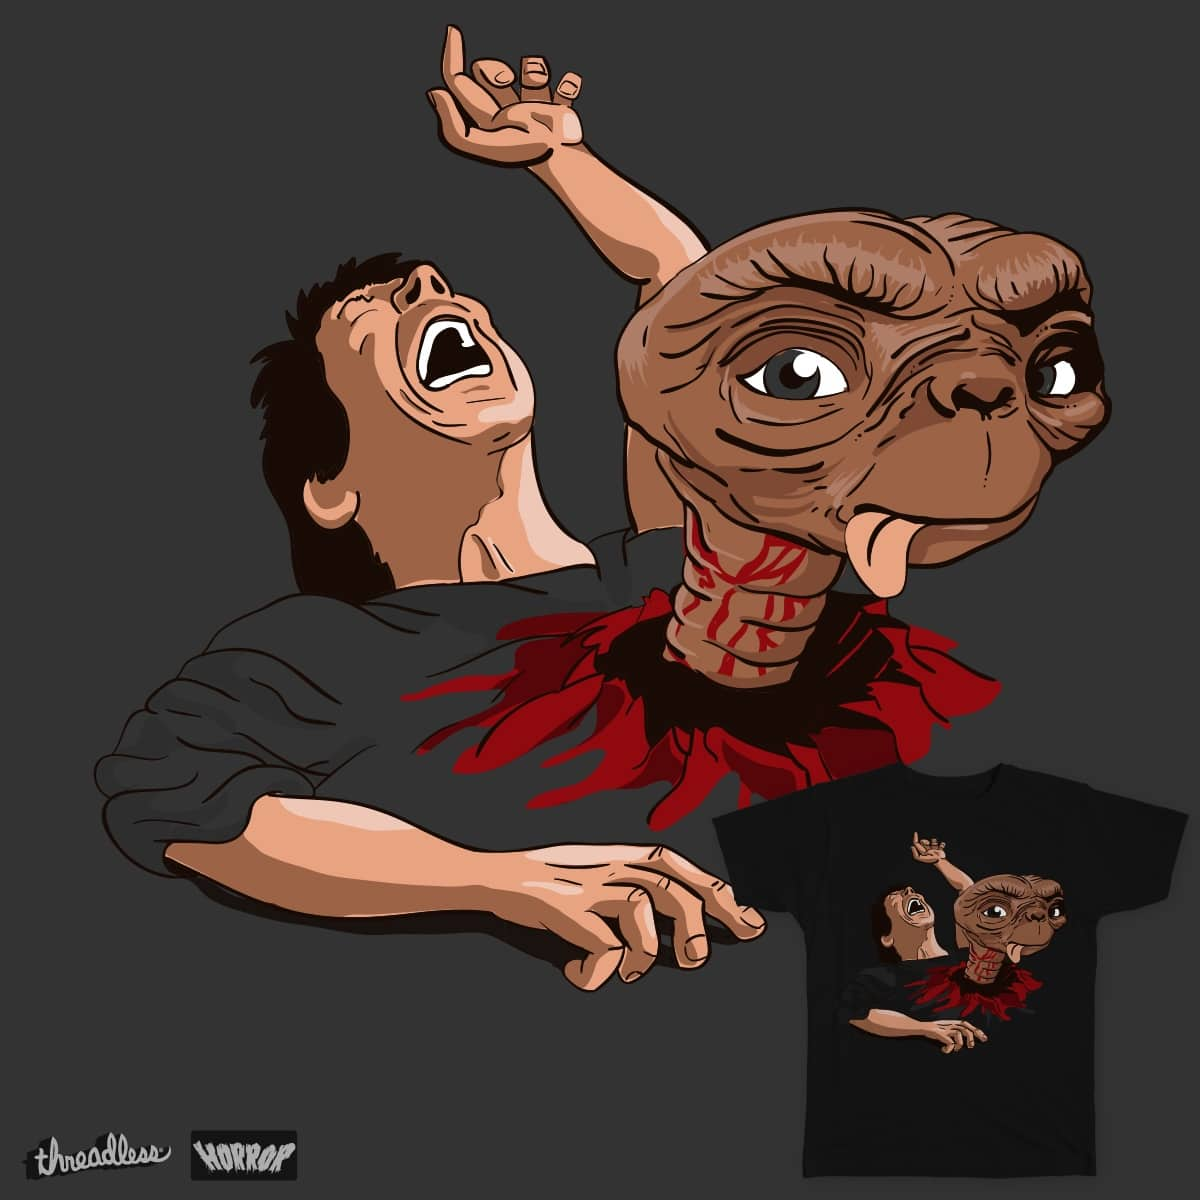 E.T the eight passenger by MolRod on Threadless